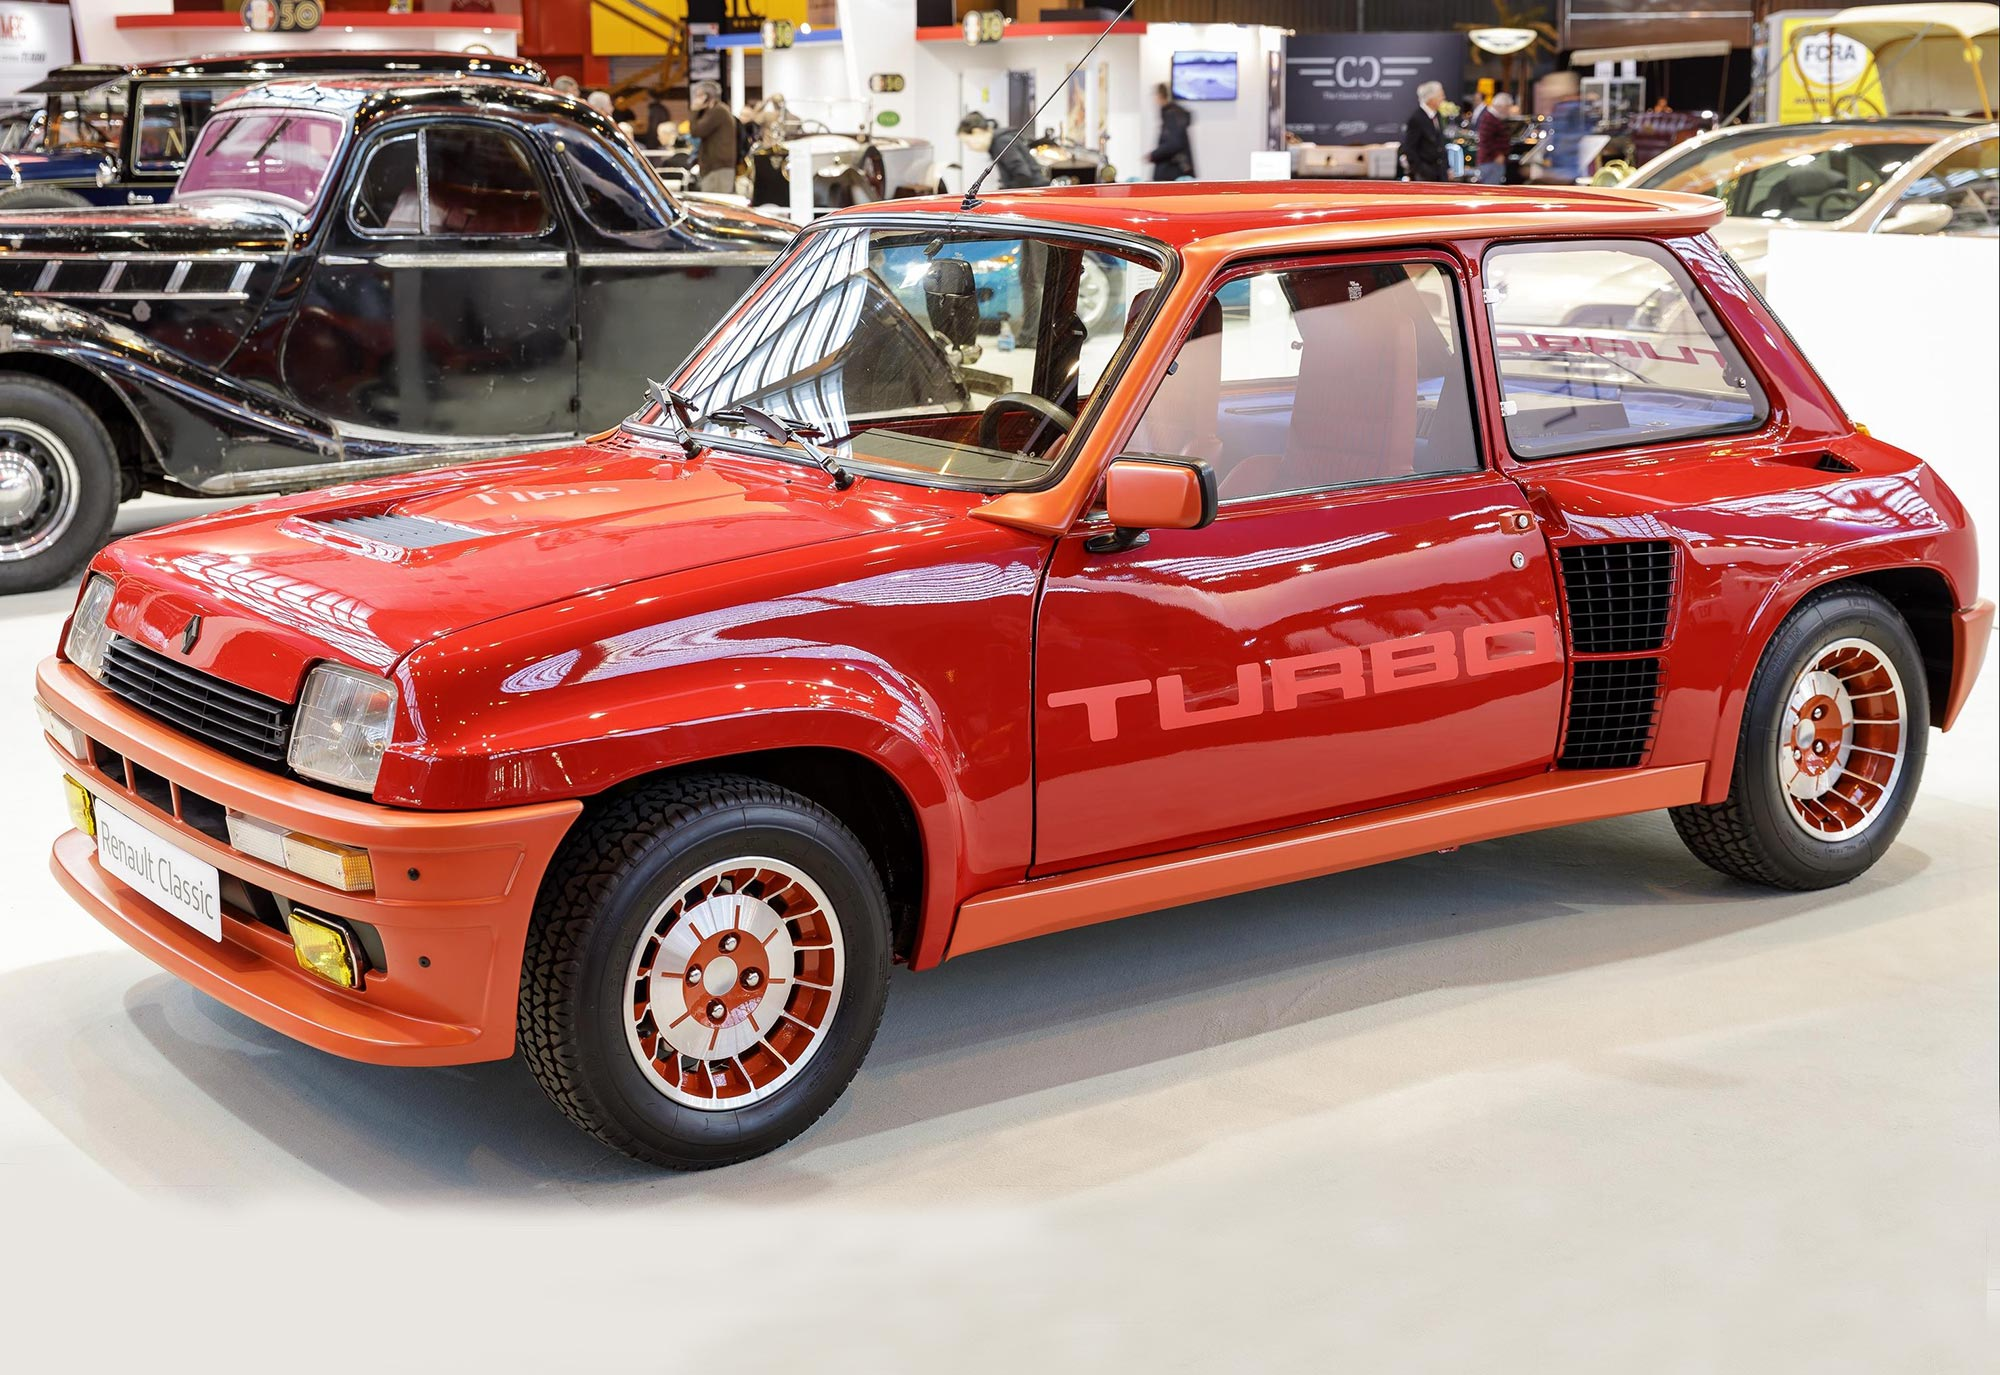 Renault_5_Turbo_1982_at_Retromobile_2017_(1).jpg